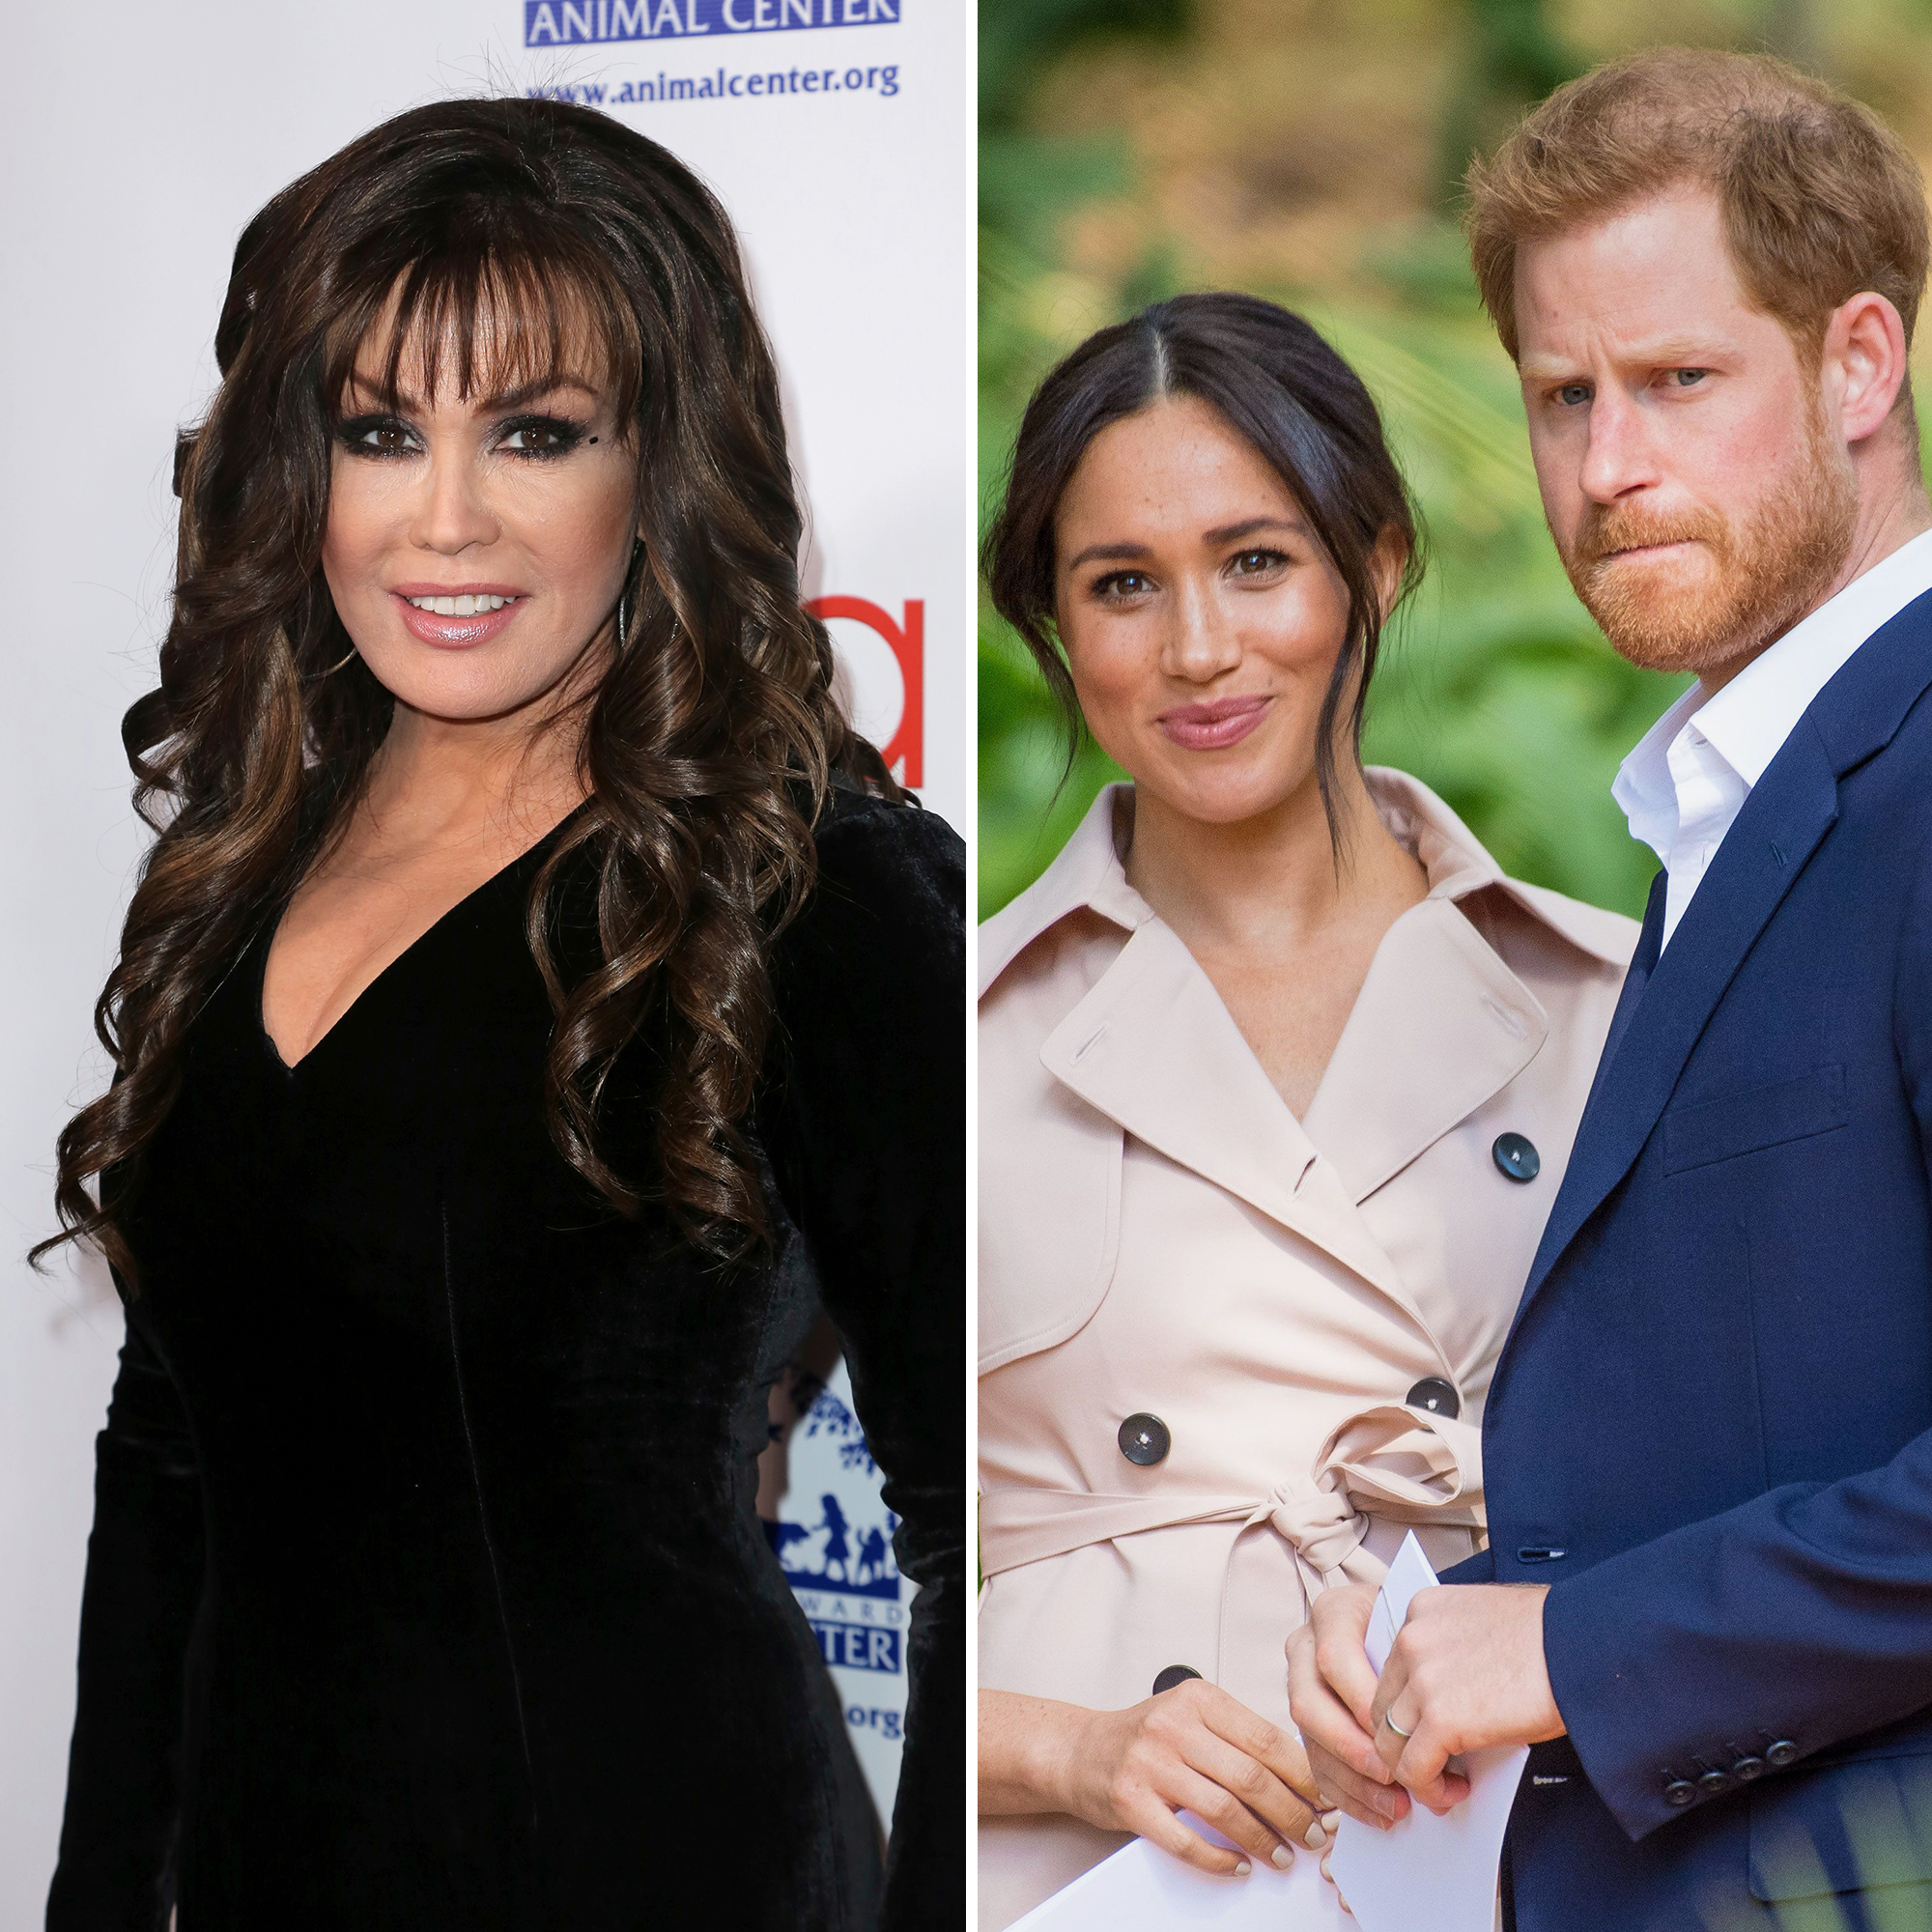 Marie Osmond Weighs In on Harry and Meghan's Decision to 'Step Back' From Their Royal Duties